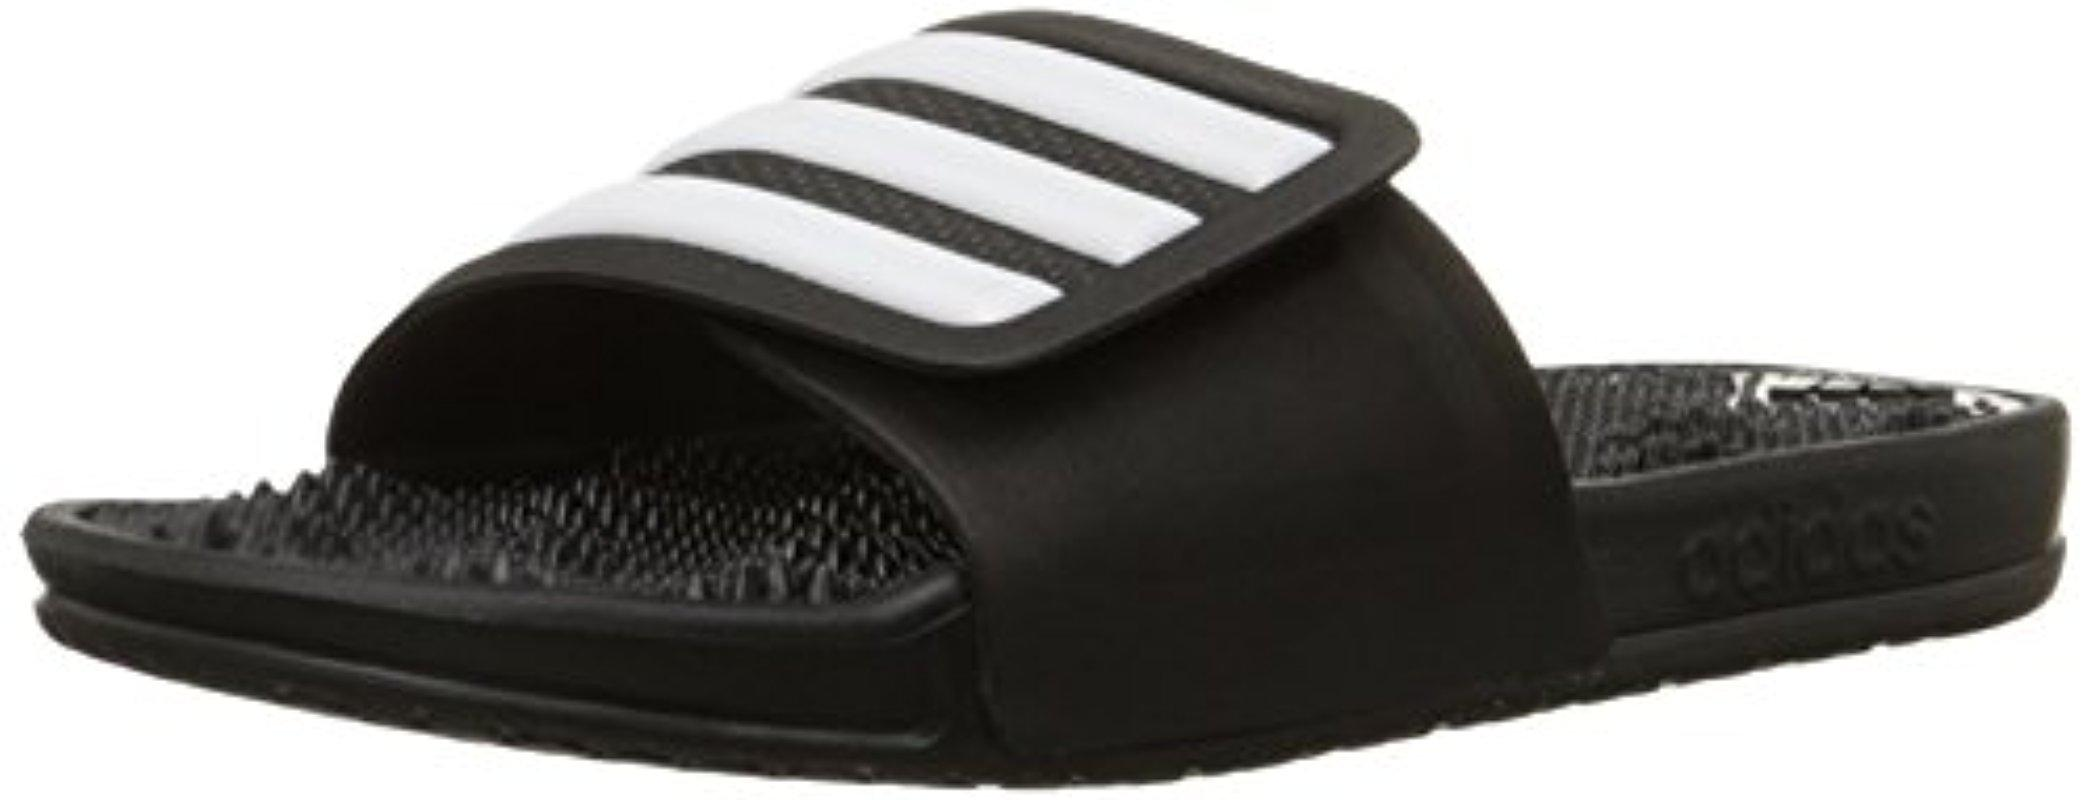 Lyst Adidas Performance adissage Stripes Athletic Sandal en